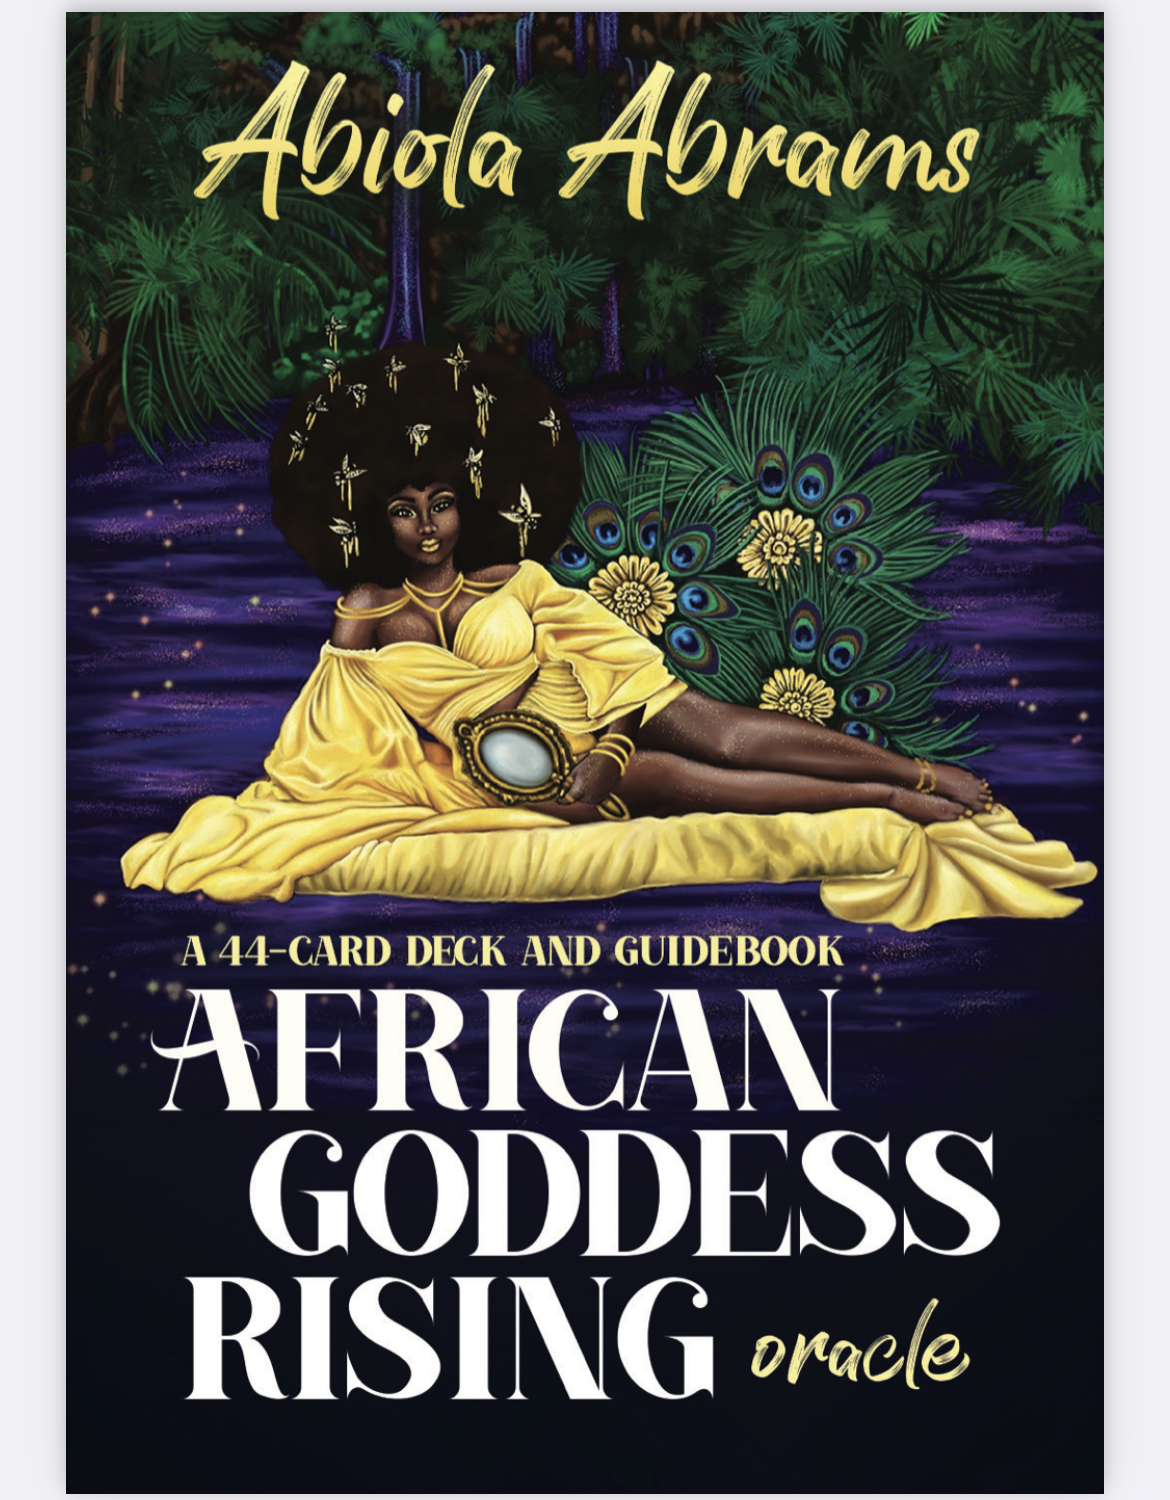 African Goddess Rising Oracle Cards Box Cover